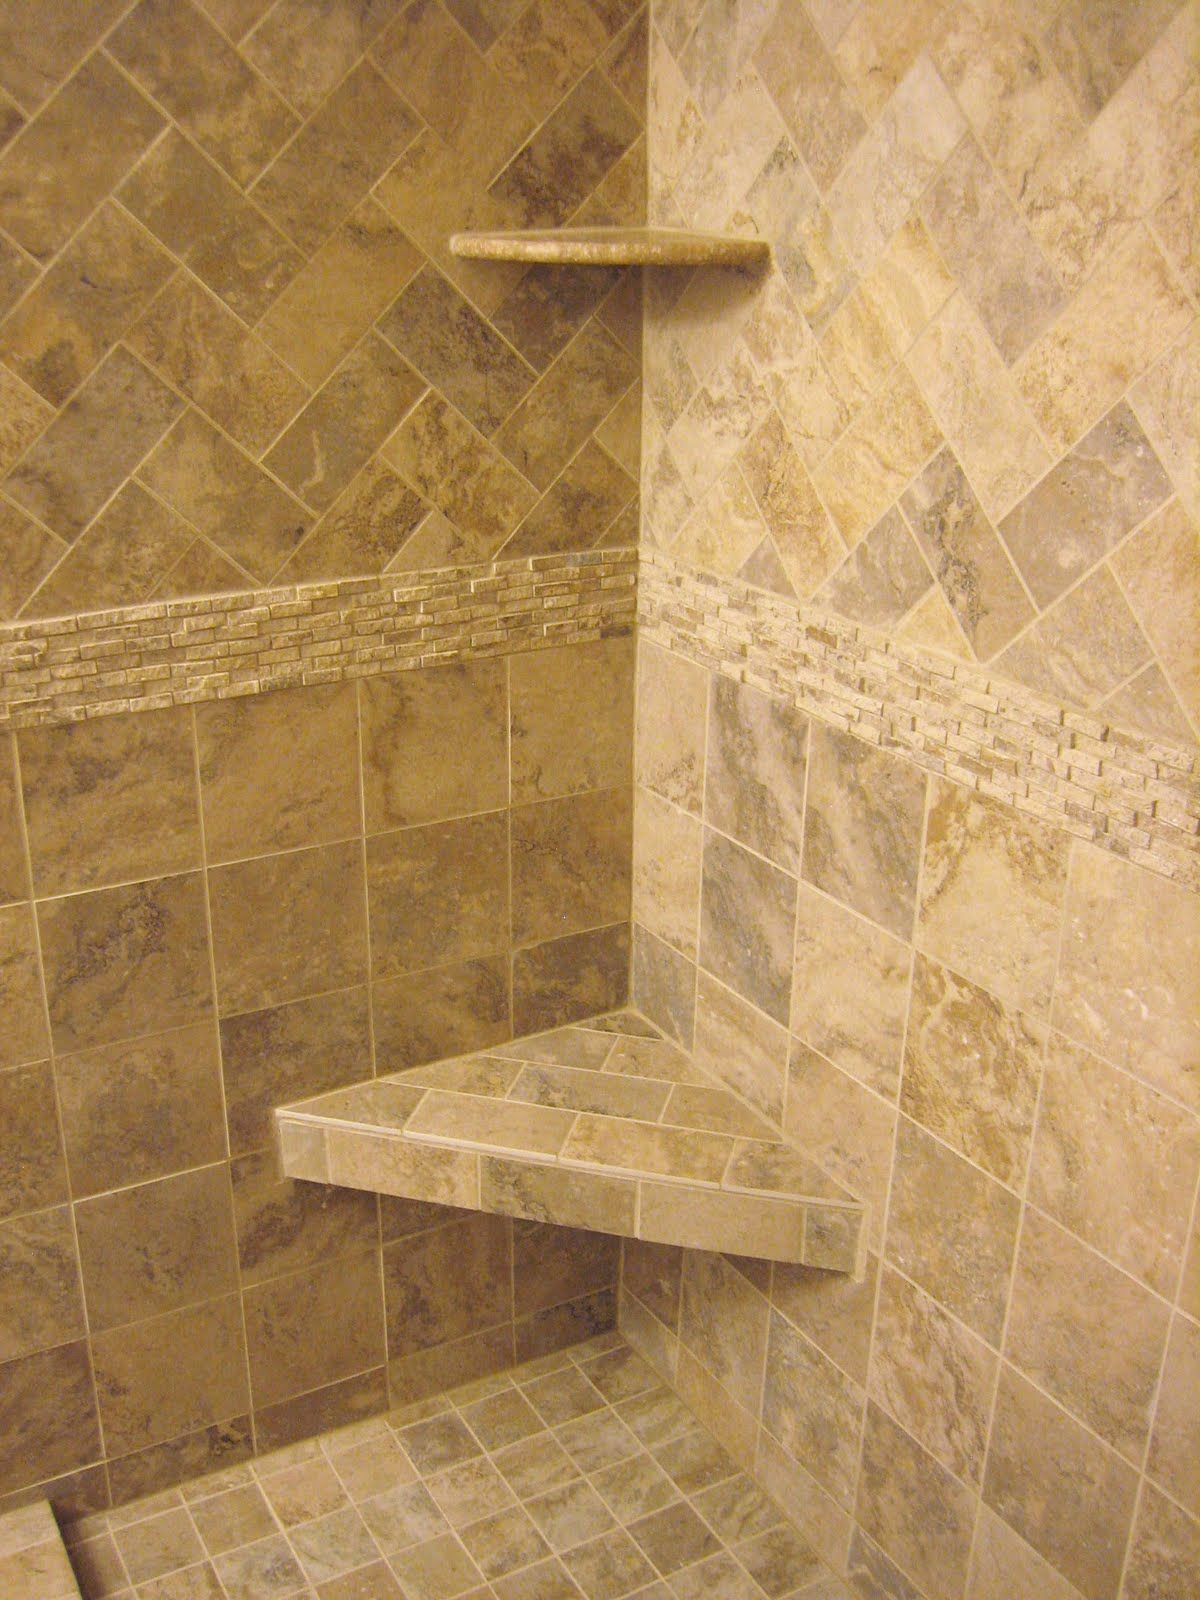 Remodel Bathroom Blog remodeling shower in small bathroom | winter showroom blog: luxury